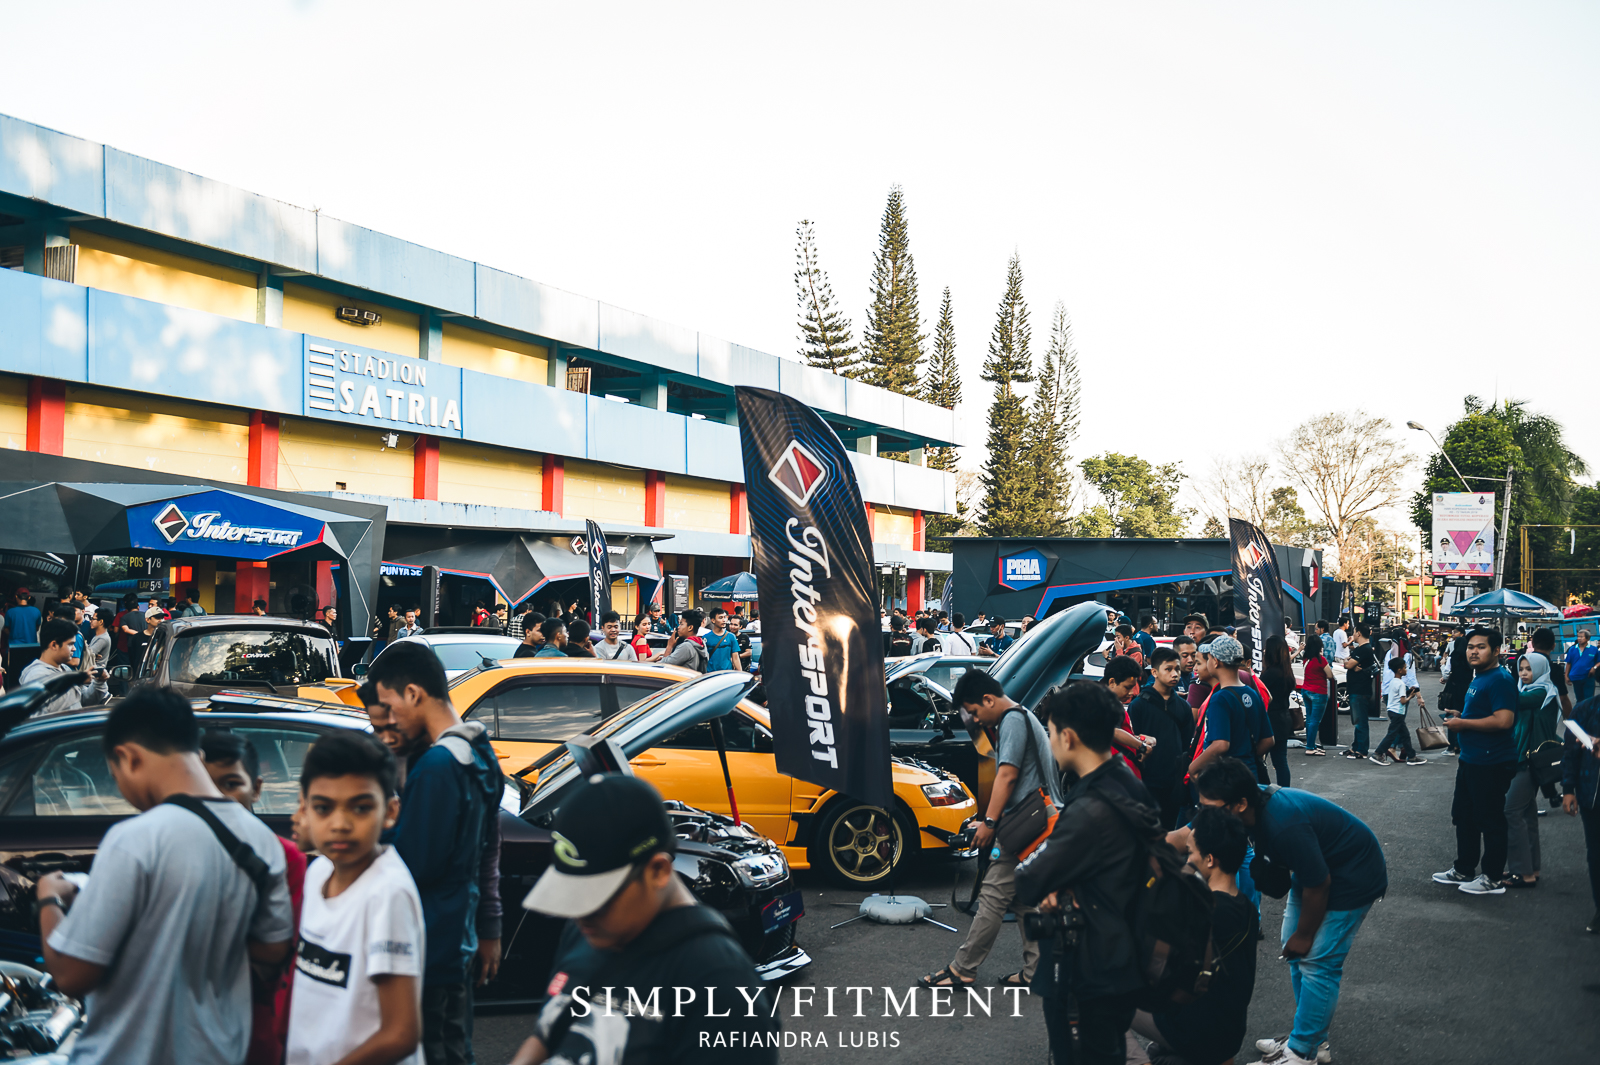 INTERSPORT AUTOSHOW PURWOKERTO 2019 - REAL CAR ENTHUSIAST IN PURWOKERTO